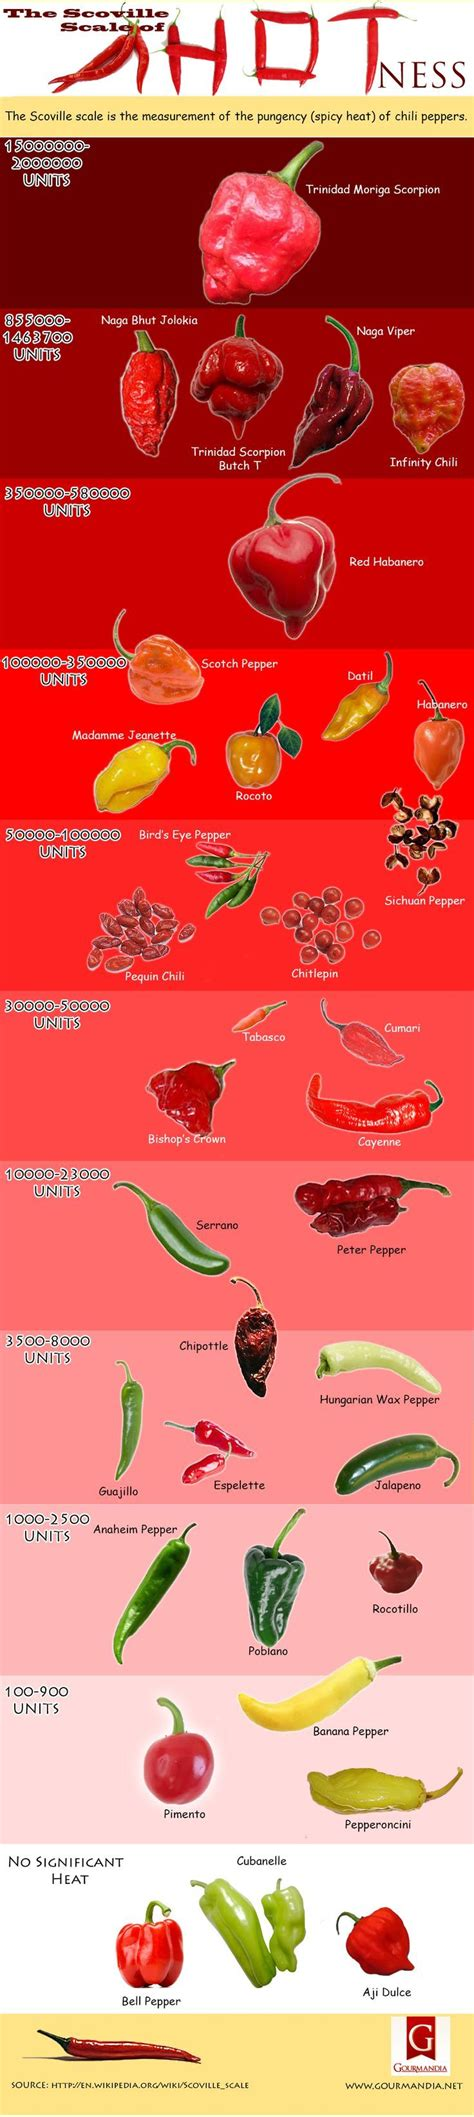 The Scoville Scale Is The Measurement Of The Pungency